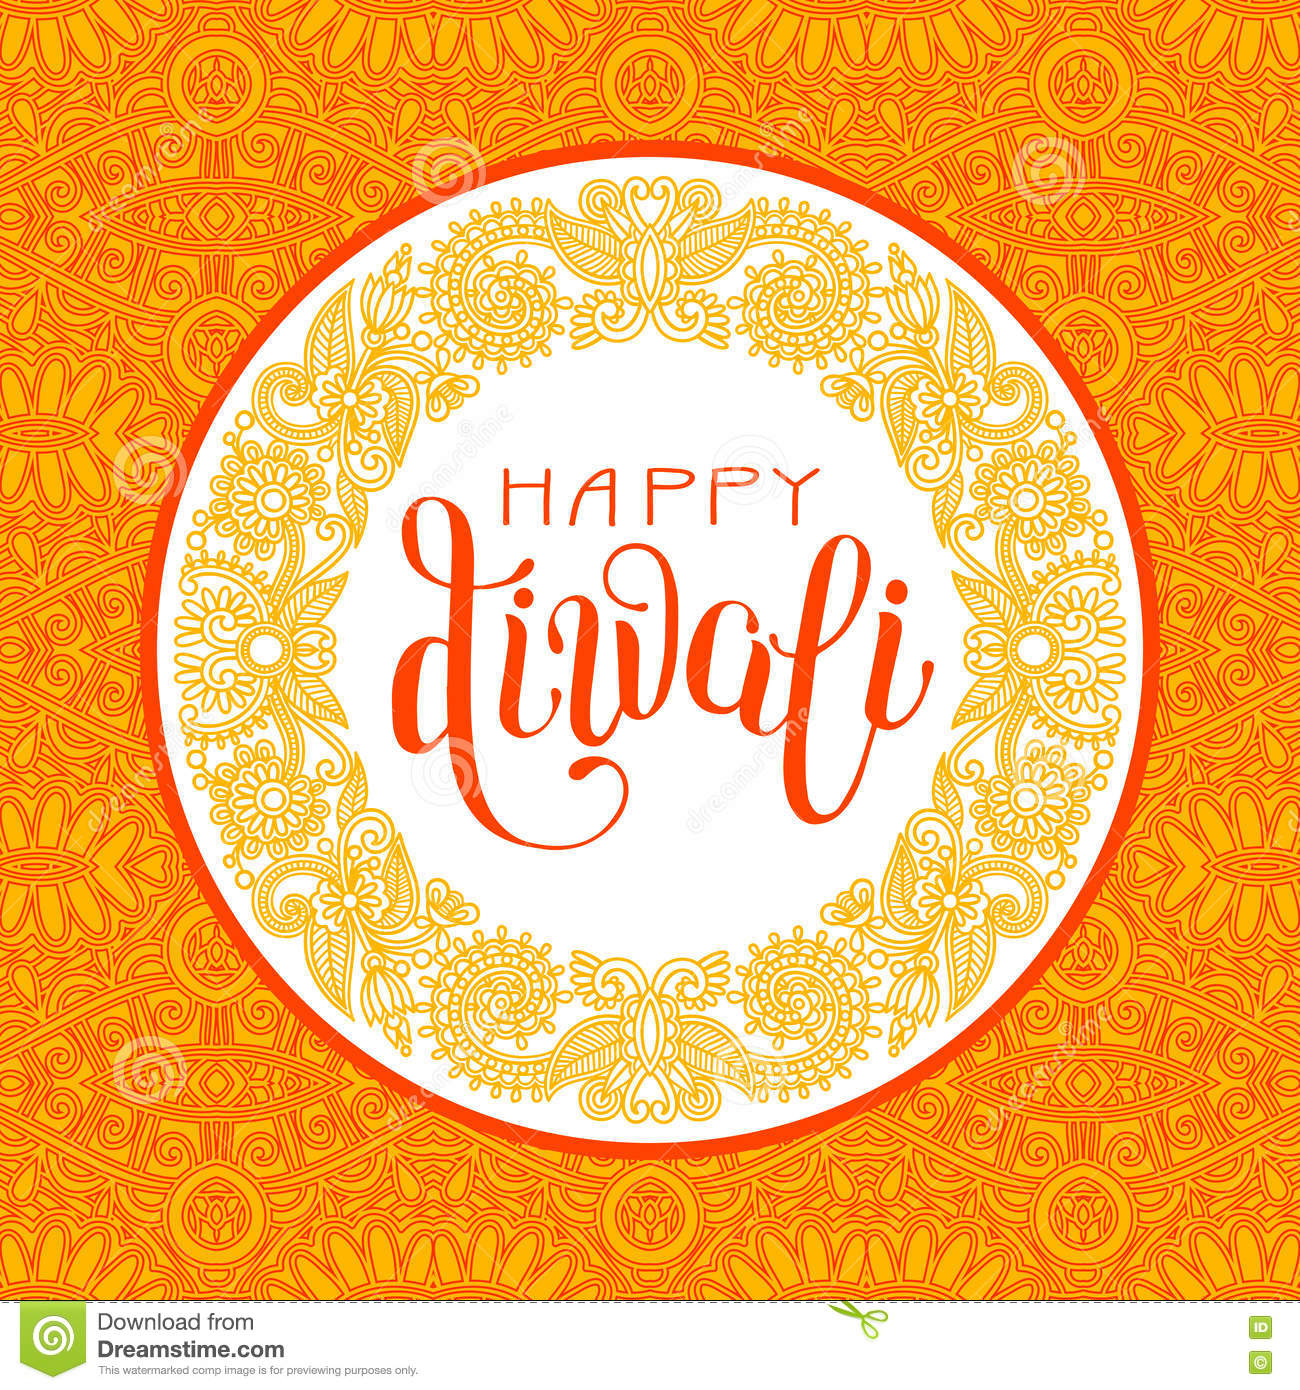 Happy Diwali Greeting Card With Circle Ornamental Background Stock